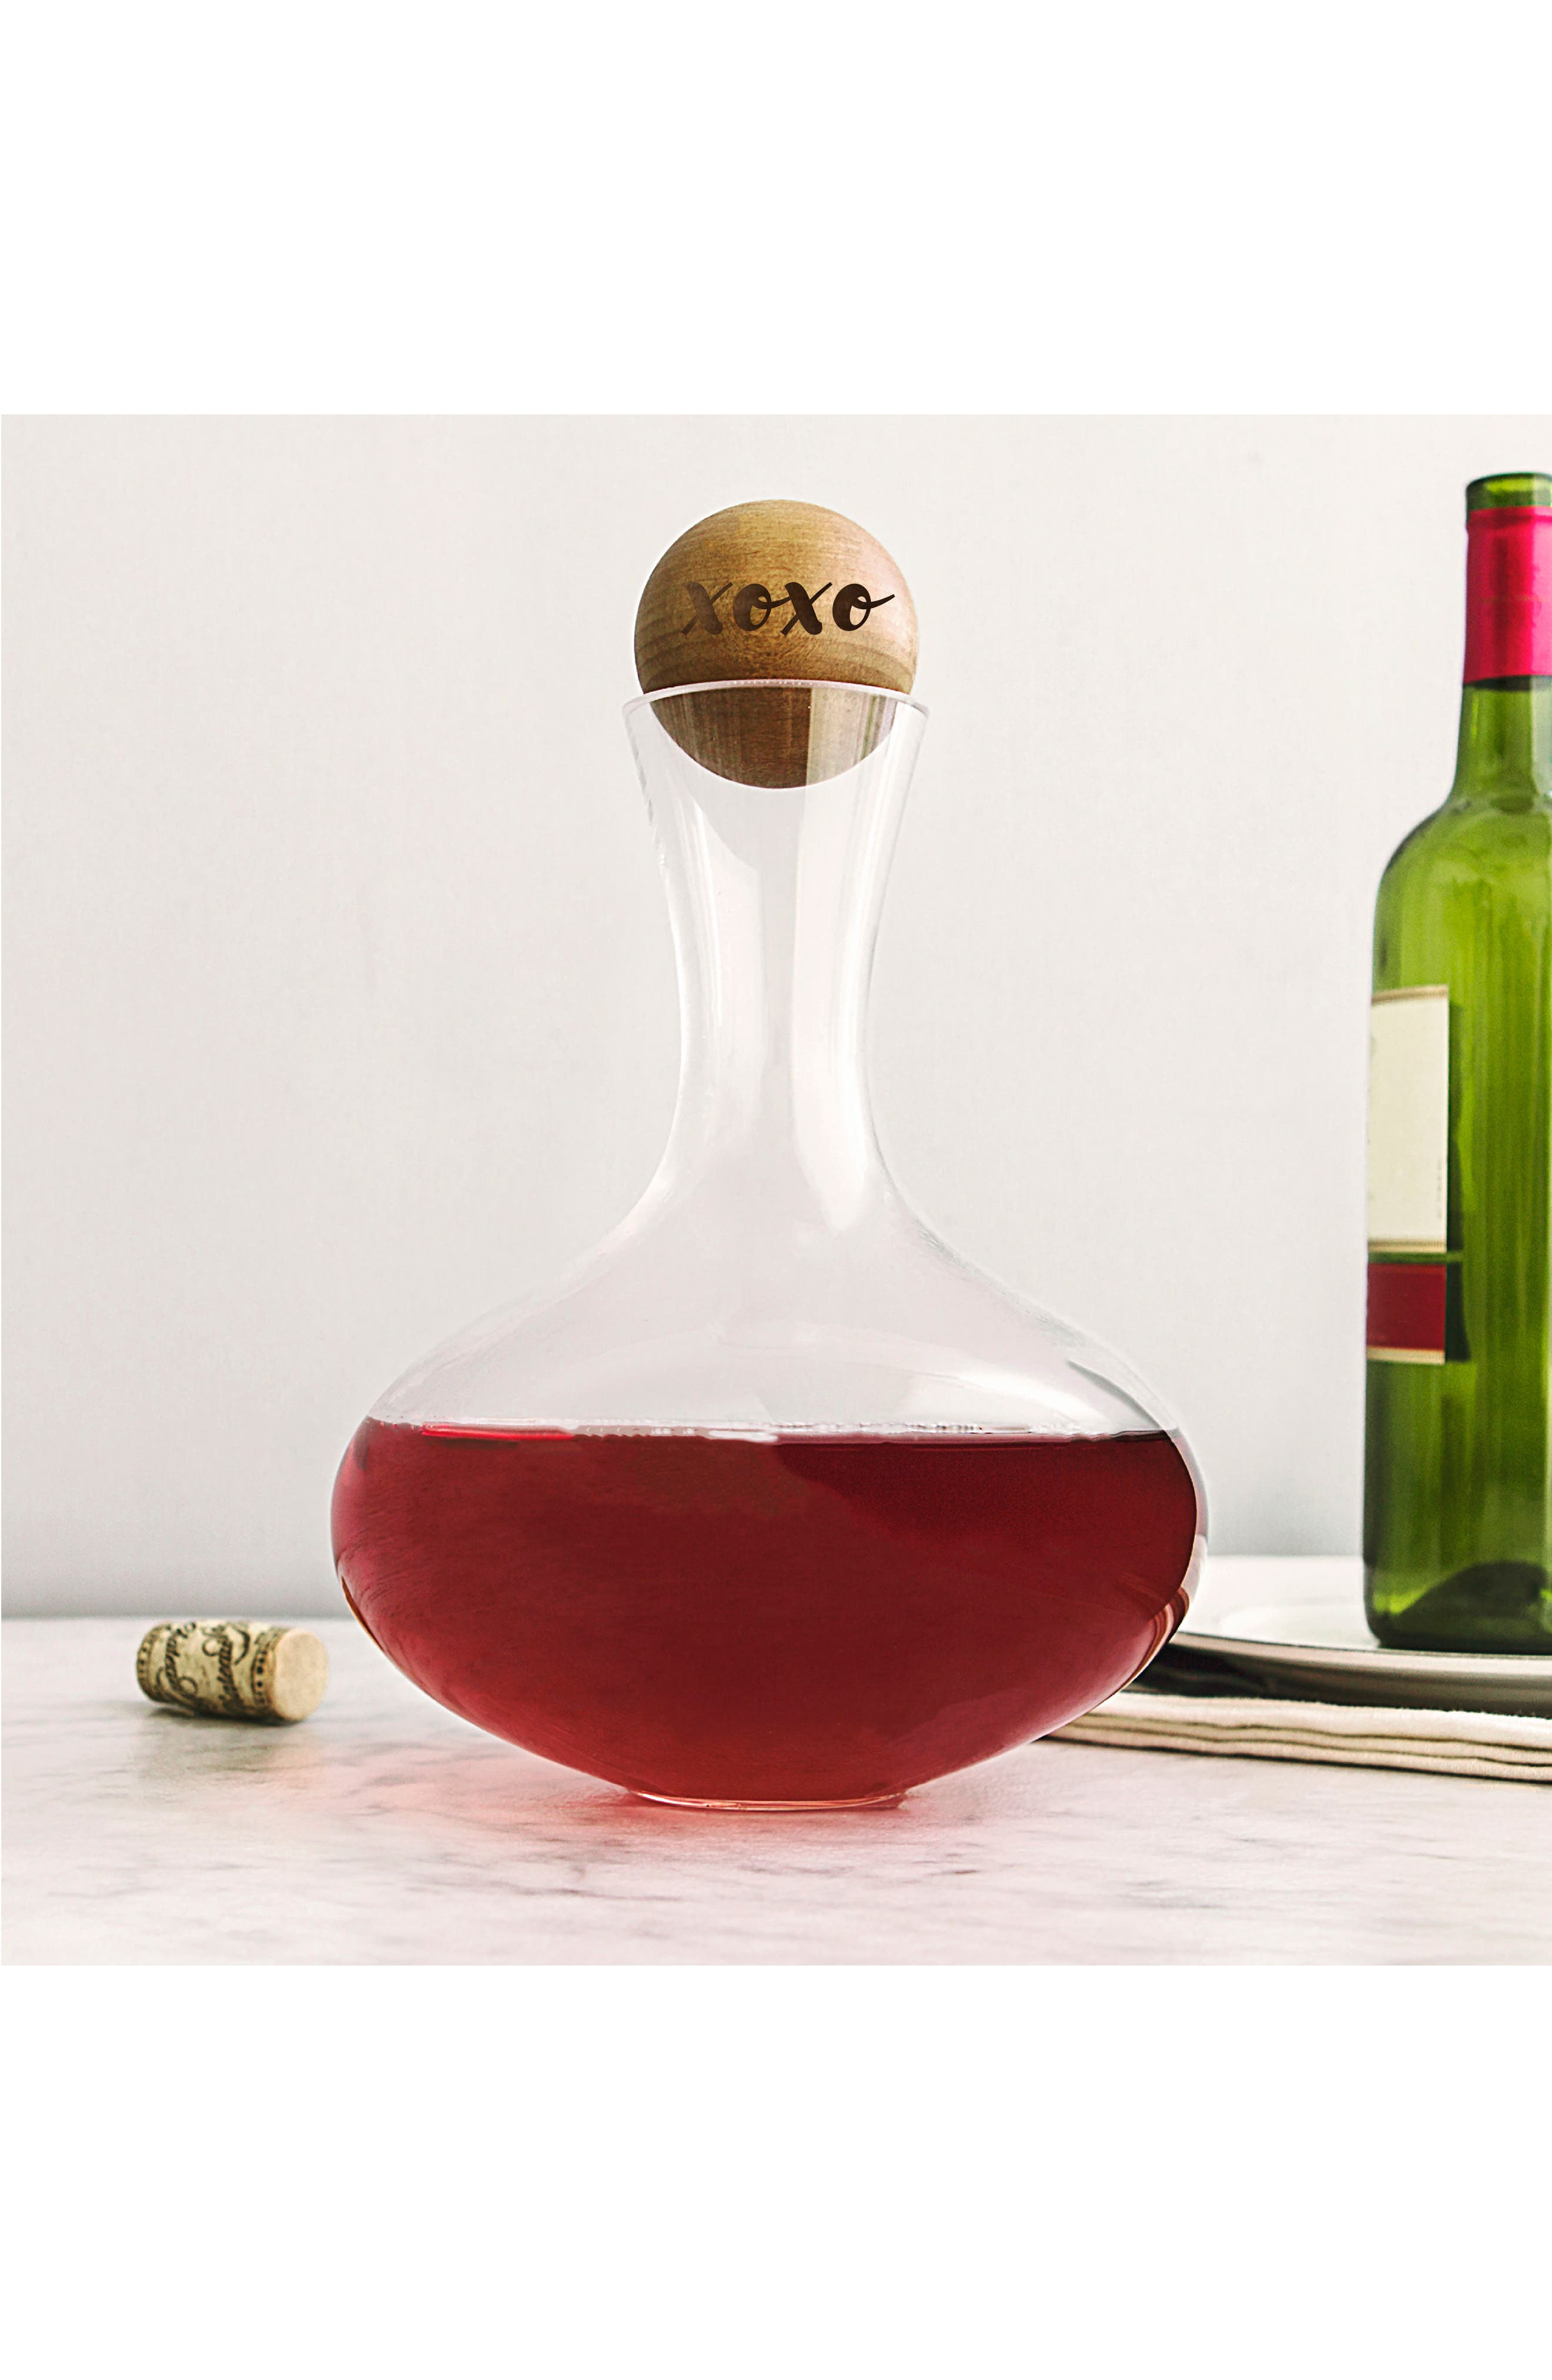 CATHY'S CONCEPTS,                             Cathy's Concept XOXO Wine Decanter,                             Alternate thumbnail 2, color,                             100